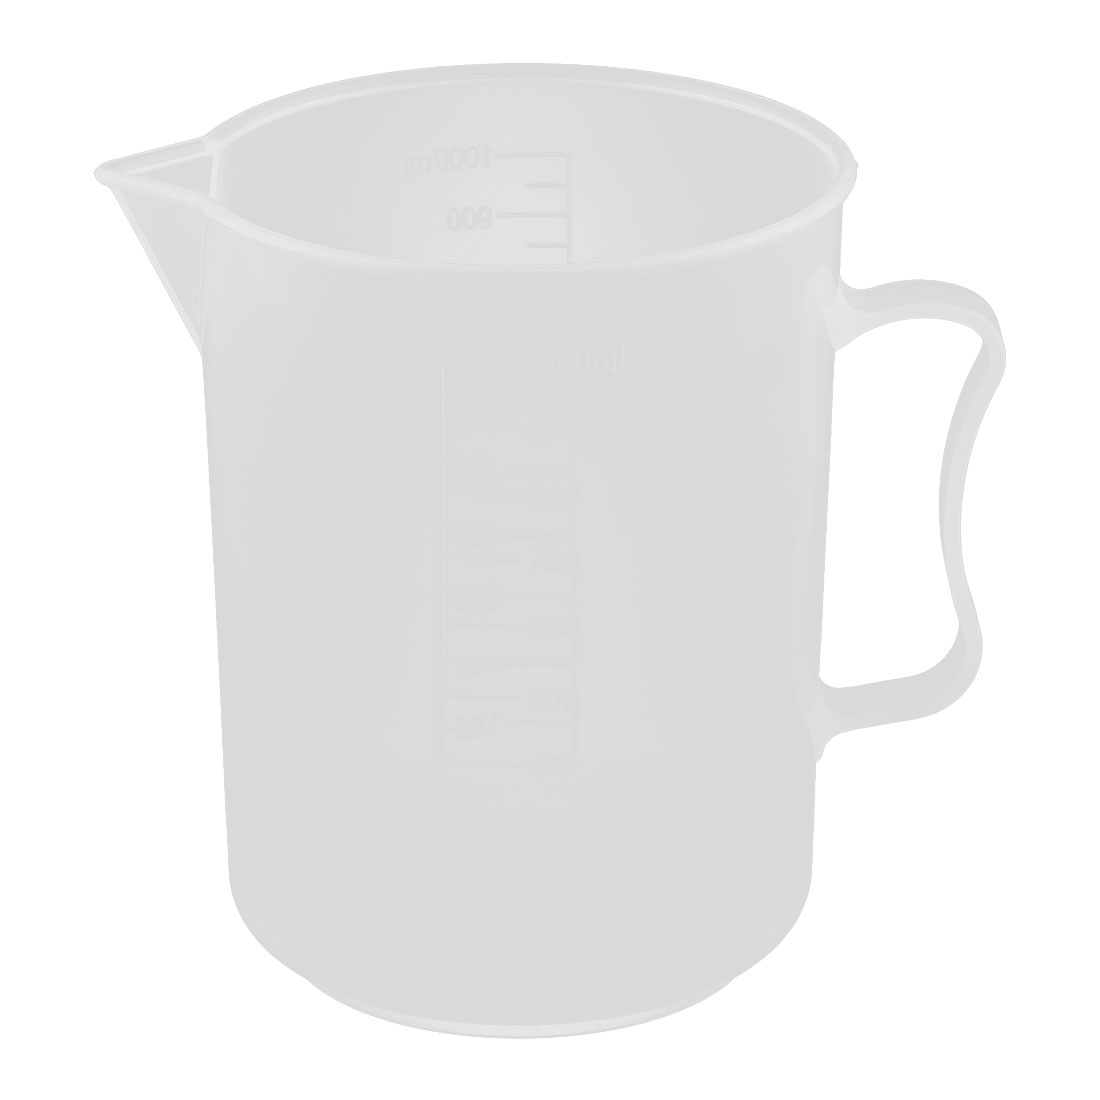 Laboratory Plastic Water Liquid Graduated Measuring Cup Clear White 1000ml